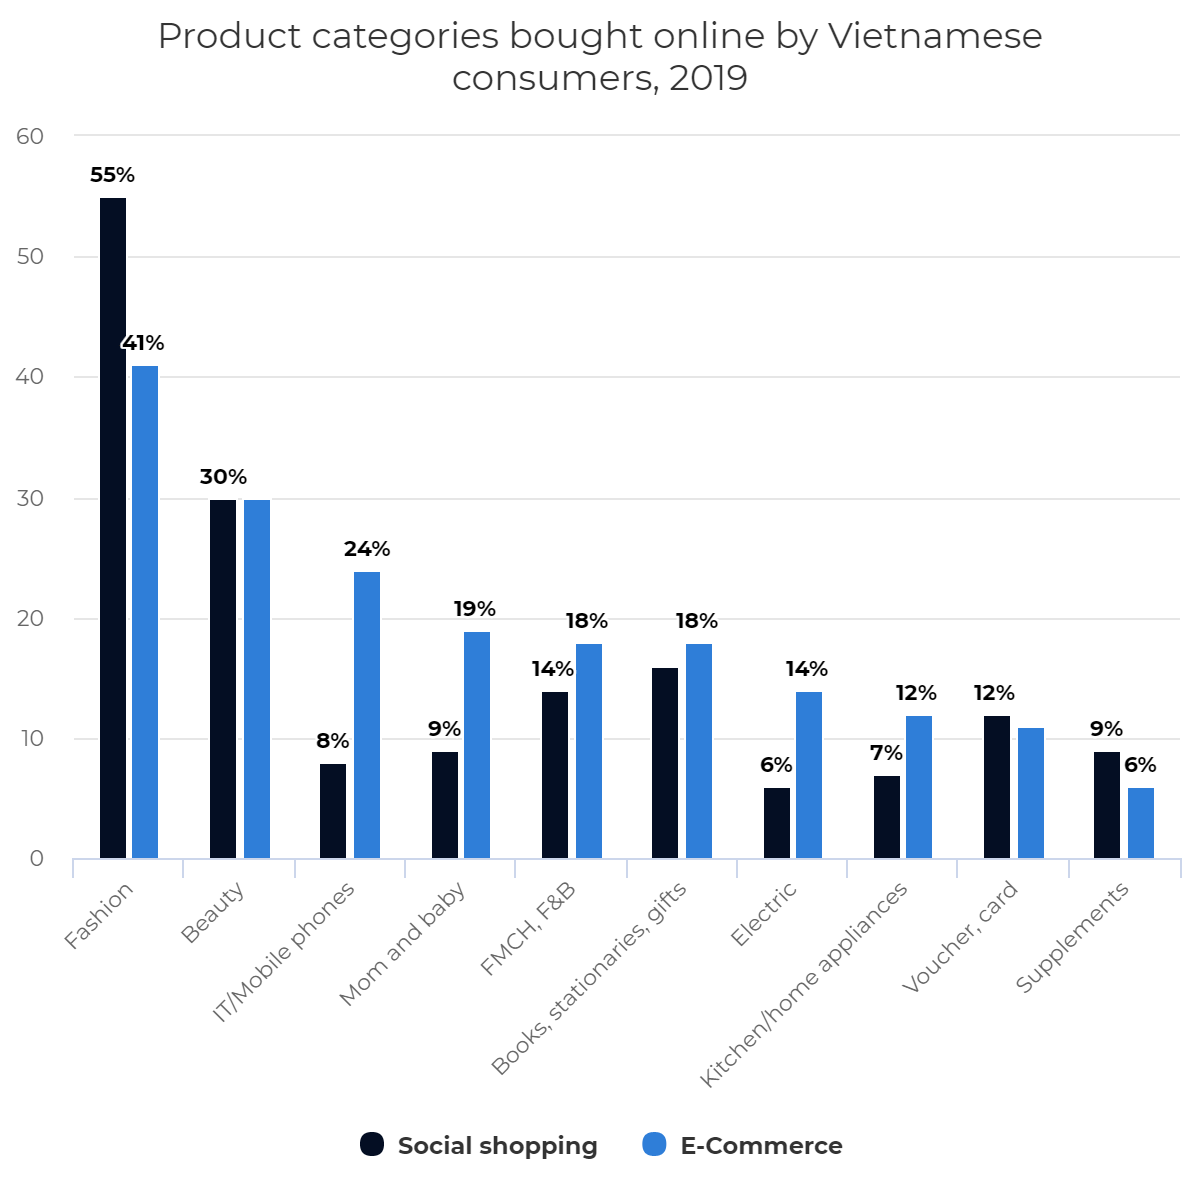 Product categories bought online by Vietnamese consumers, 2019